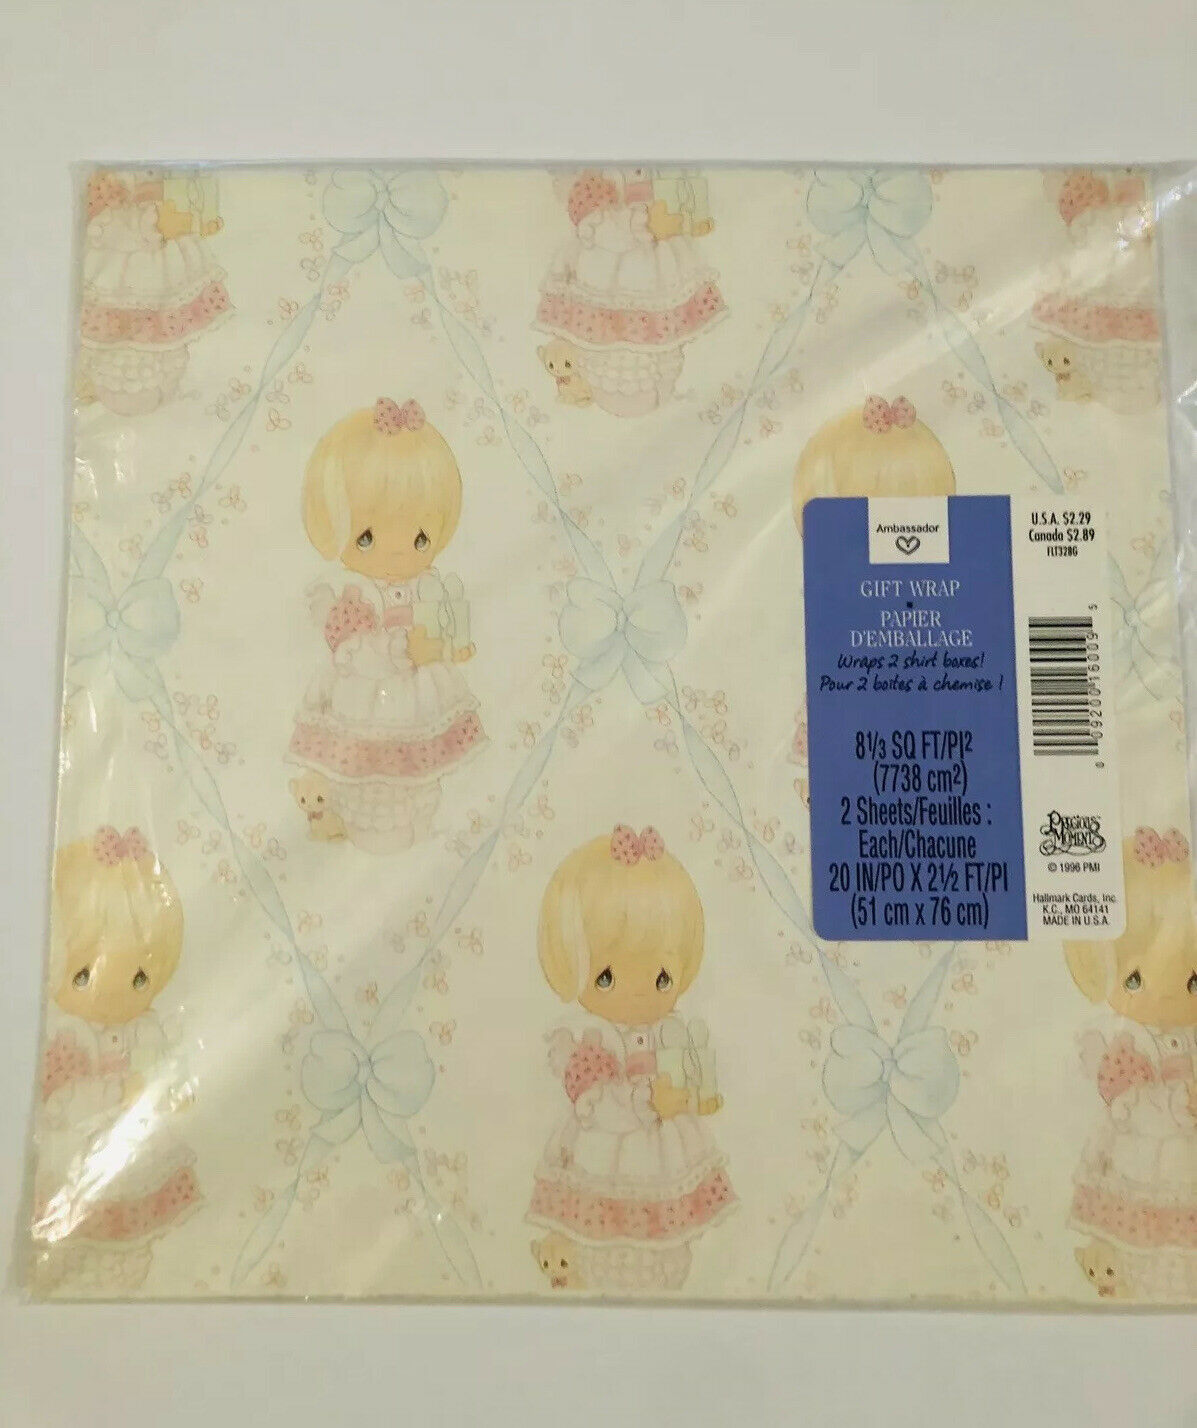 Vintage Precious Moments Ambassador Hallmark Gift Wrap Wrapping Paper  Birthday for sale online